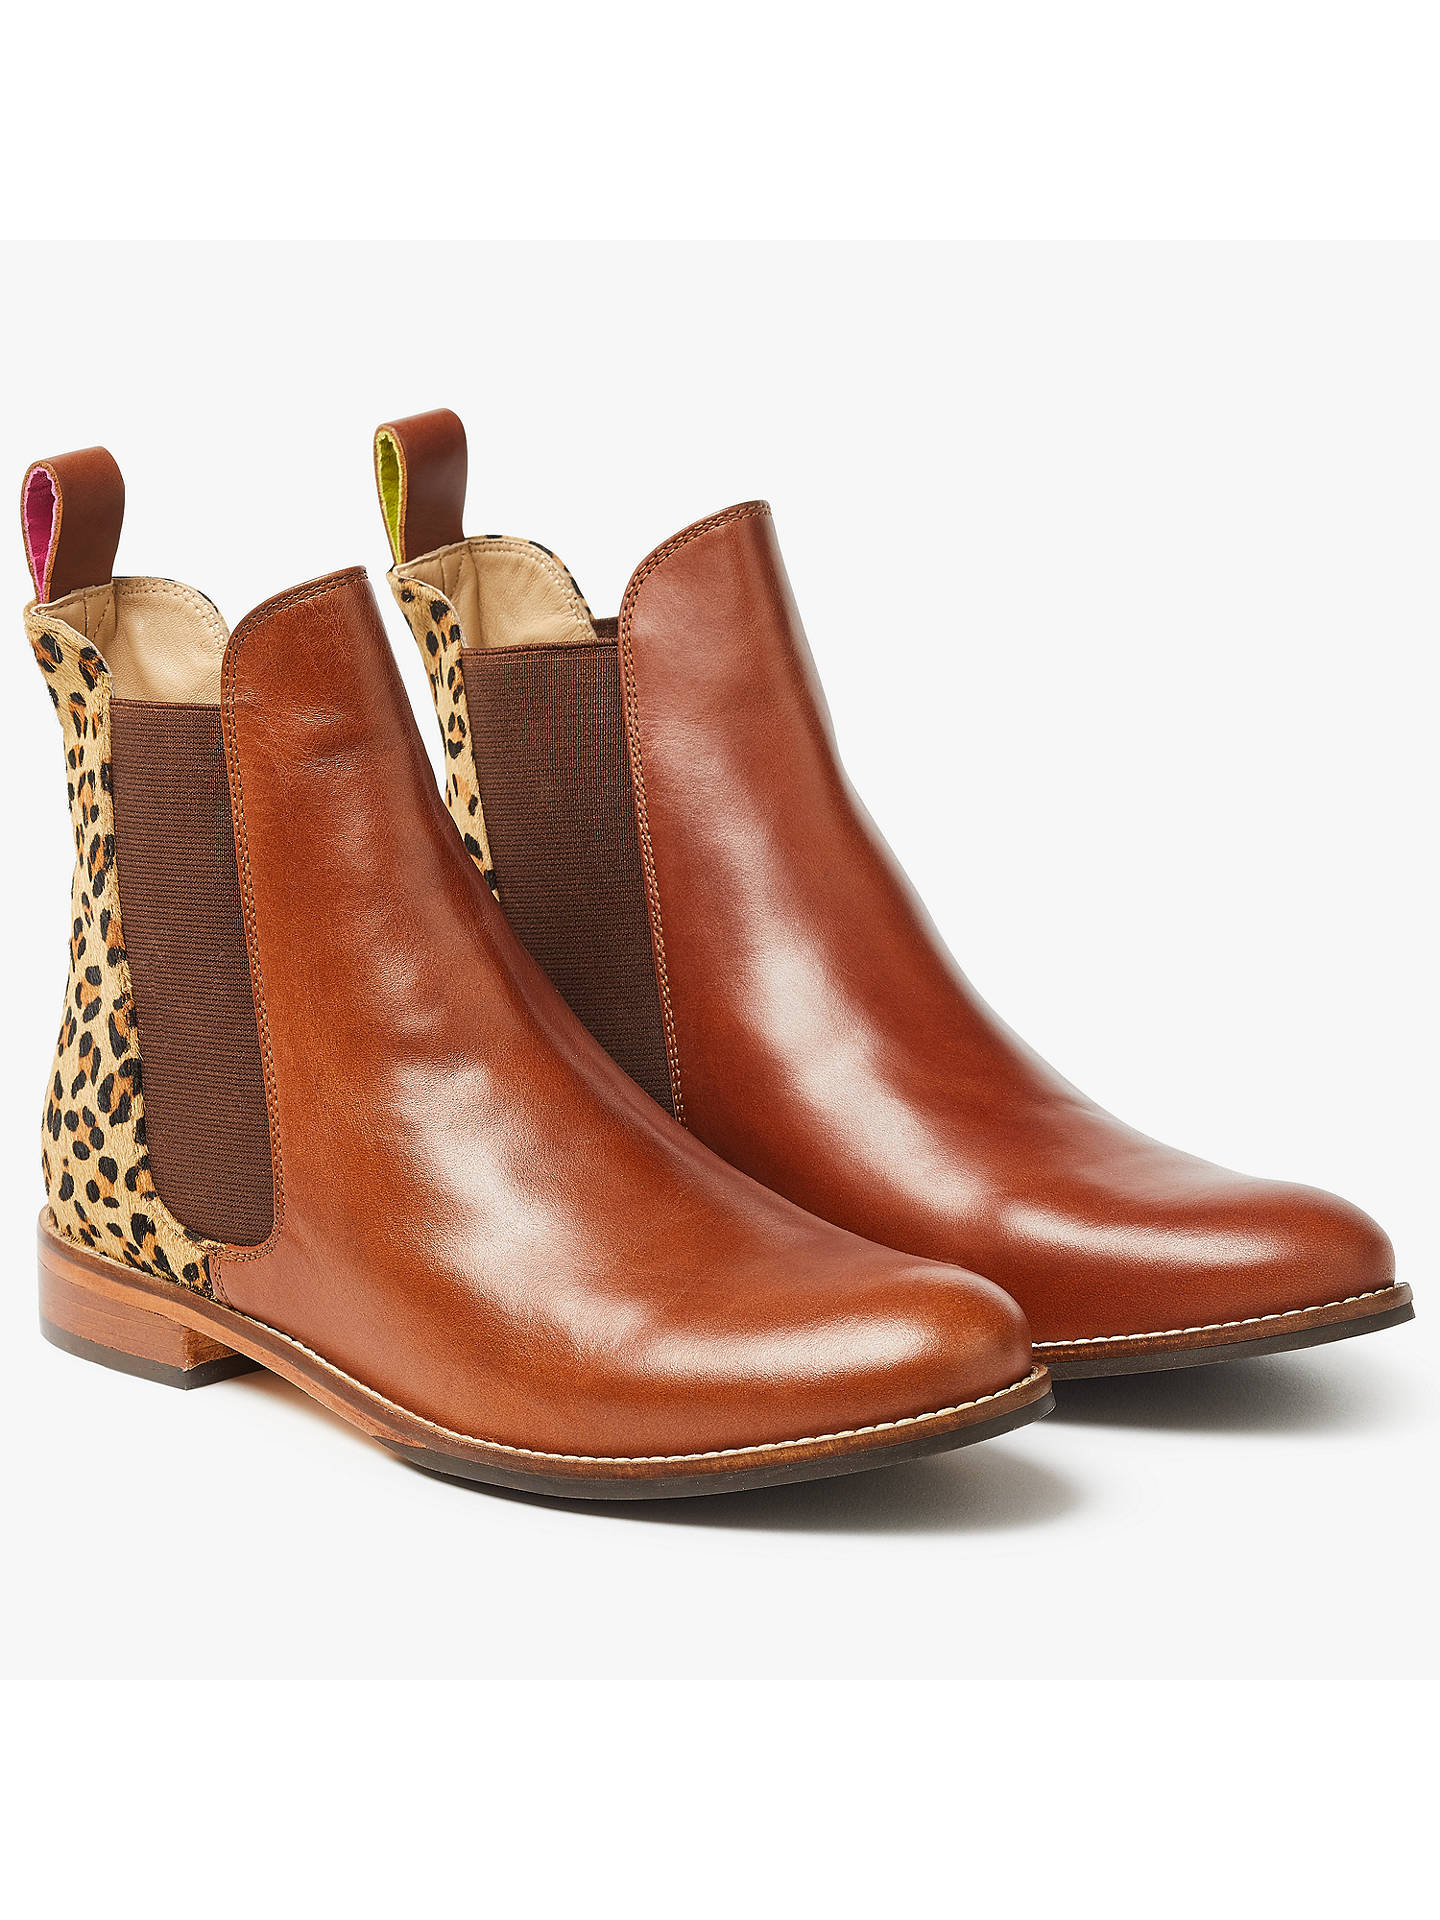 Westbourne LEOPARD Chelsea Boot   Joules UK